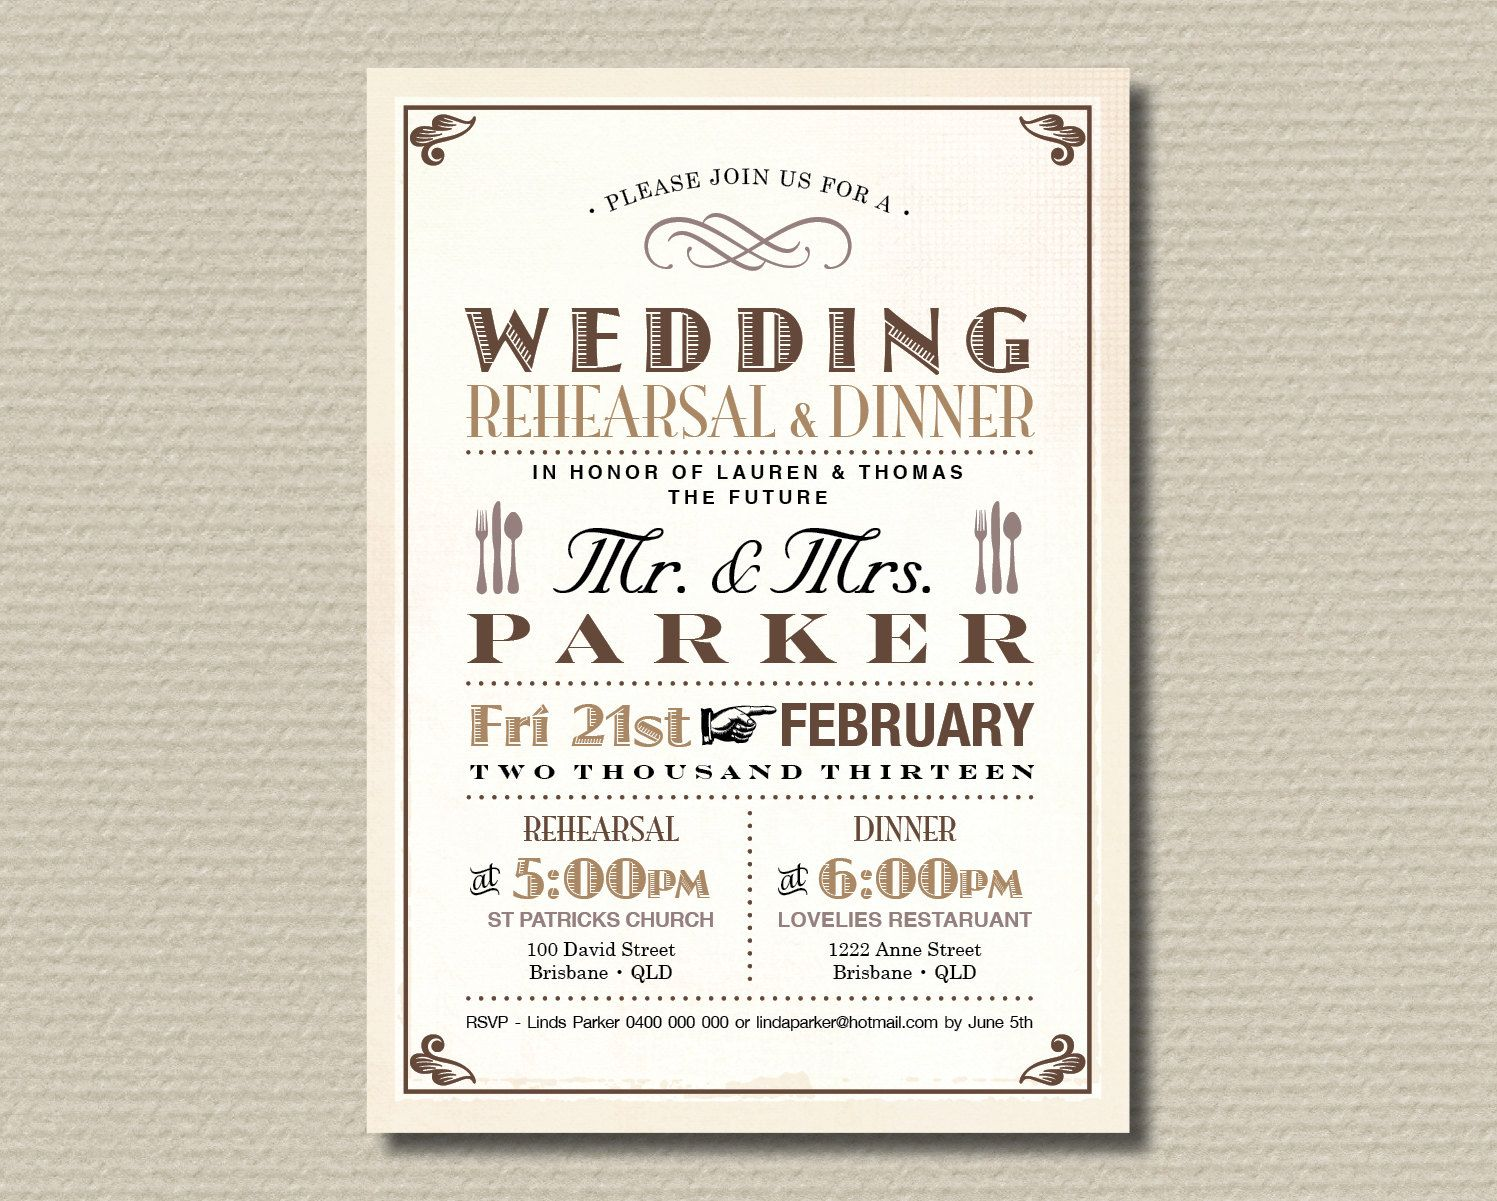 Who Do You Invite To Wedding Rehearsal Dinner: Printable Wedding Rehearsal Dinner Invitation \\ Vintage